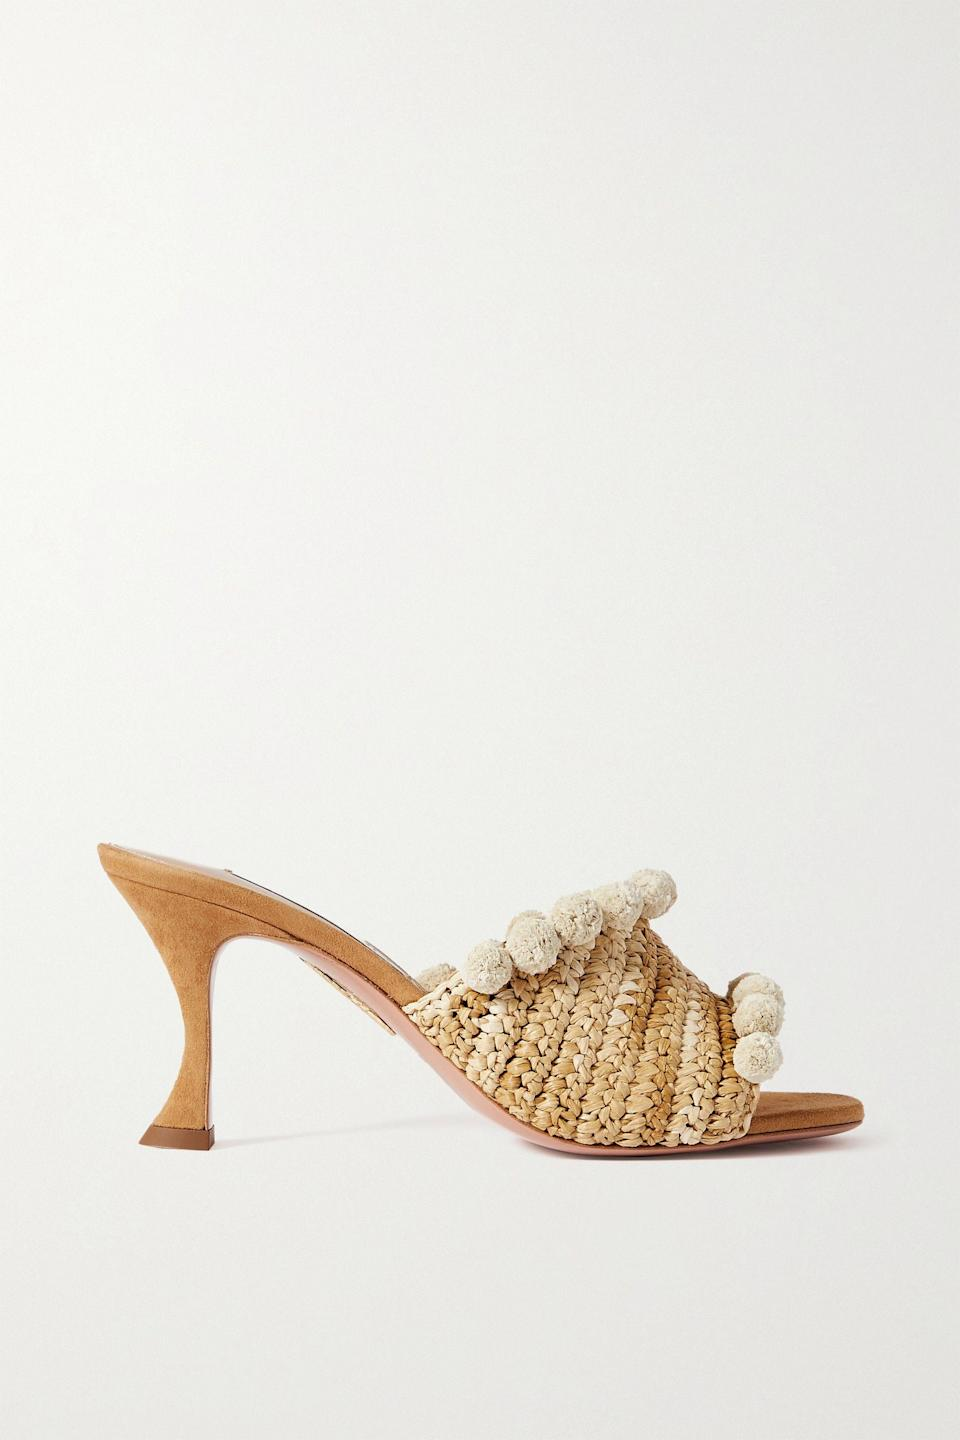 """<p><strong>Aquazzura</strong></p><p>net-a-porter.com</p><p><strong>$850.00</strong></p><p><a href=""""https://go.redirectingat.com?id=74968X1596630&url=https%3A%2F%2Fwww.net-a-porter.com%2Fen-us%2Fshop%2Fproduct%2Faquazzura%2Fshoes%2Fmid-heel%2Fpompom-embellished-woven-raffia-mules%2F2204324138602836&sref=https%3A%2F%2Fwww.townandcountrymag.com%2Fstyle%2Ffashion-trends%2Fg36200206%2Fsummer-shoes%2F"""" rel=""""nofollow noopener"""" target=""""_blank"""" data-ylk=""""slk:Shop Now"""" class=""""link rapid-noclick-resp"""">Shop Now</a></p><p>Summery raffia and playful pom-poms: this pair of heels has everything you need to get into summery party season.</p>"""